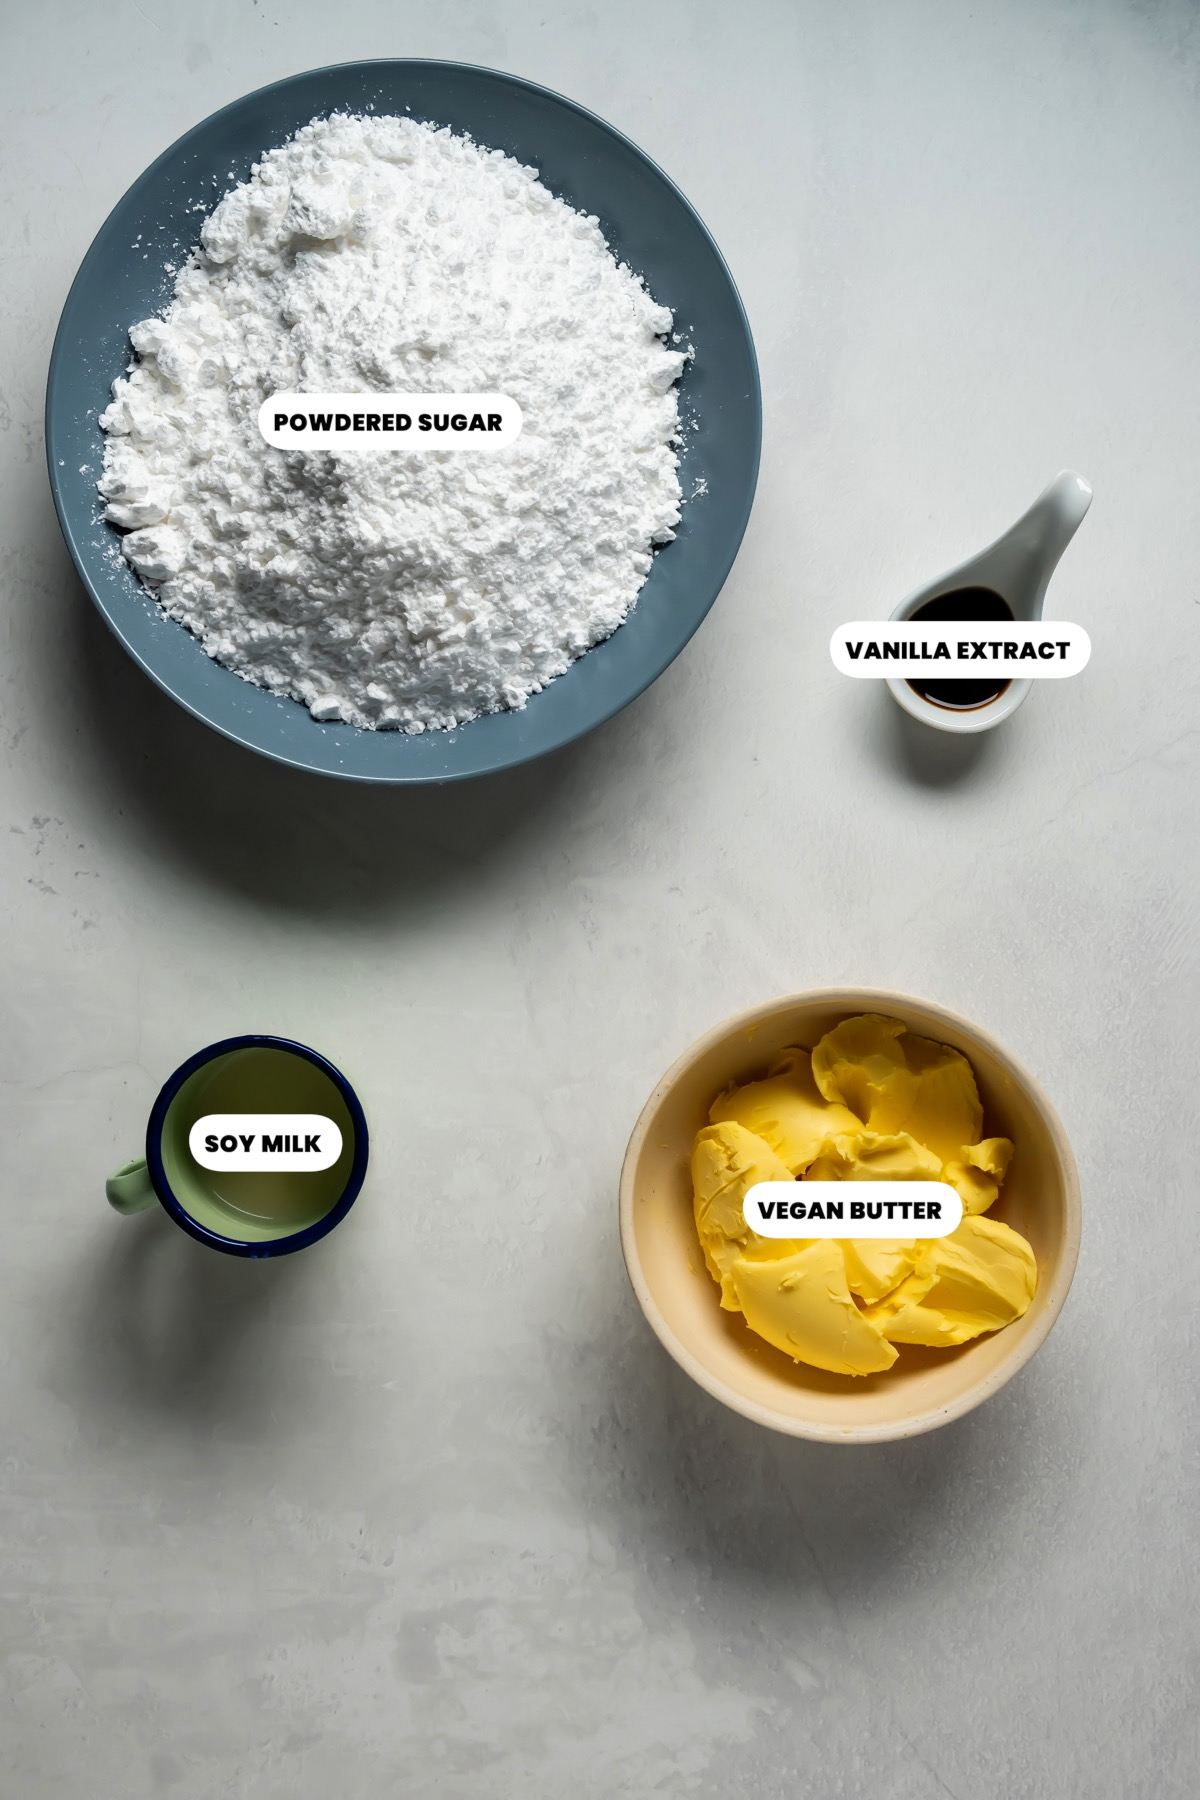 Photo of the ingredients needed to make frosting.